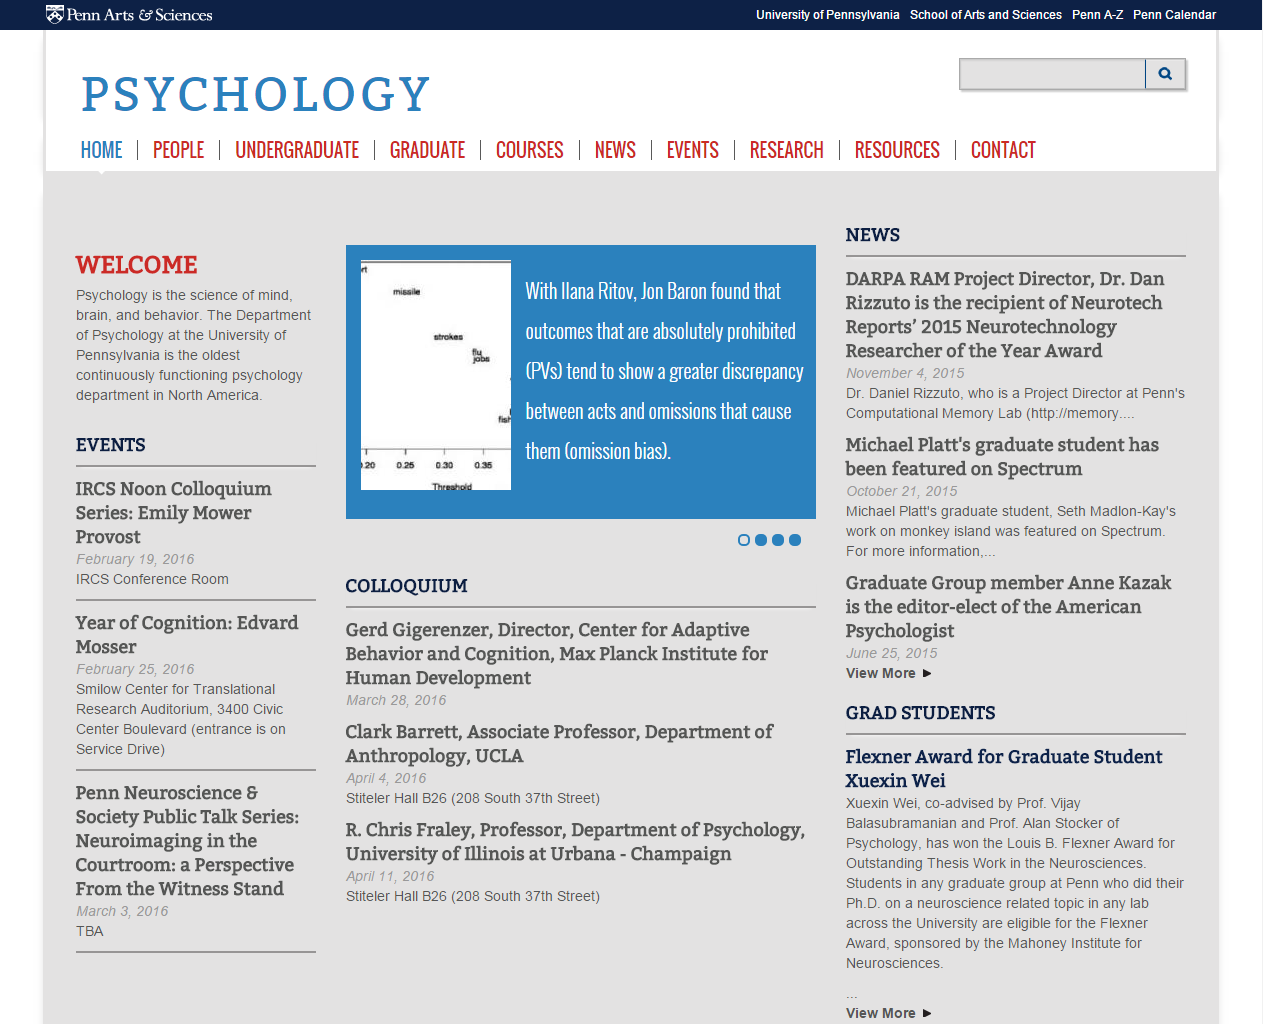 University of Pennsylvania Psychology Department